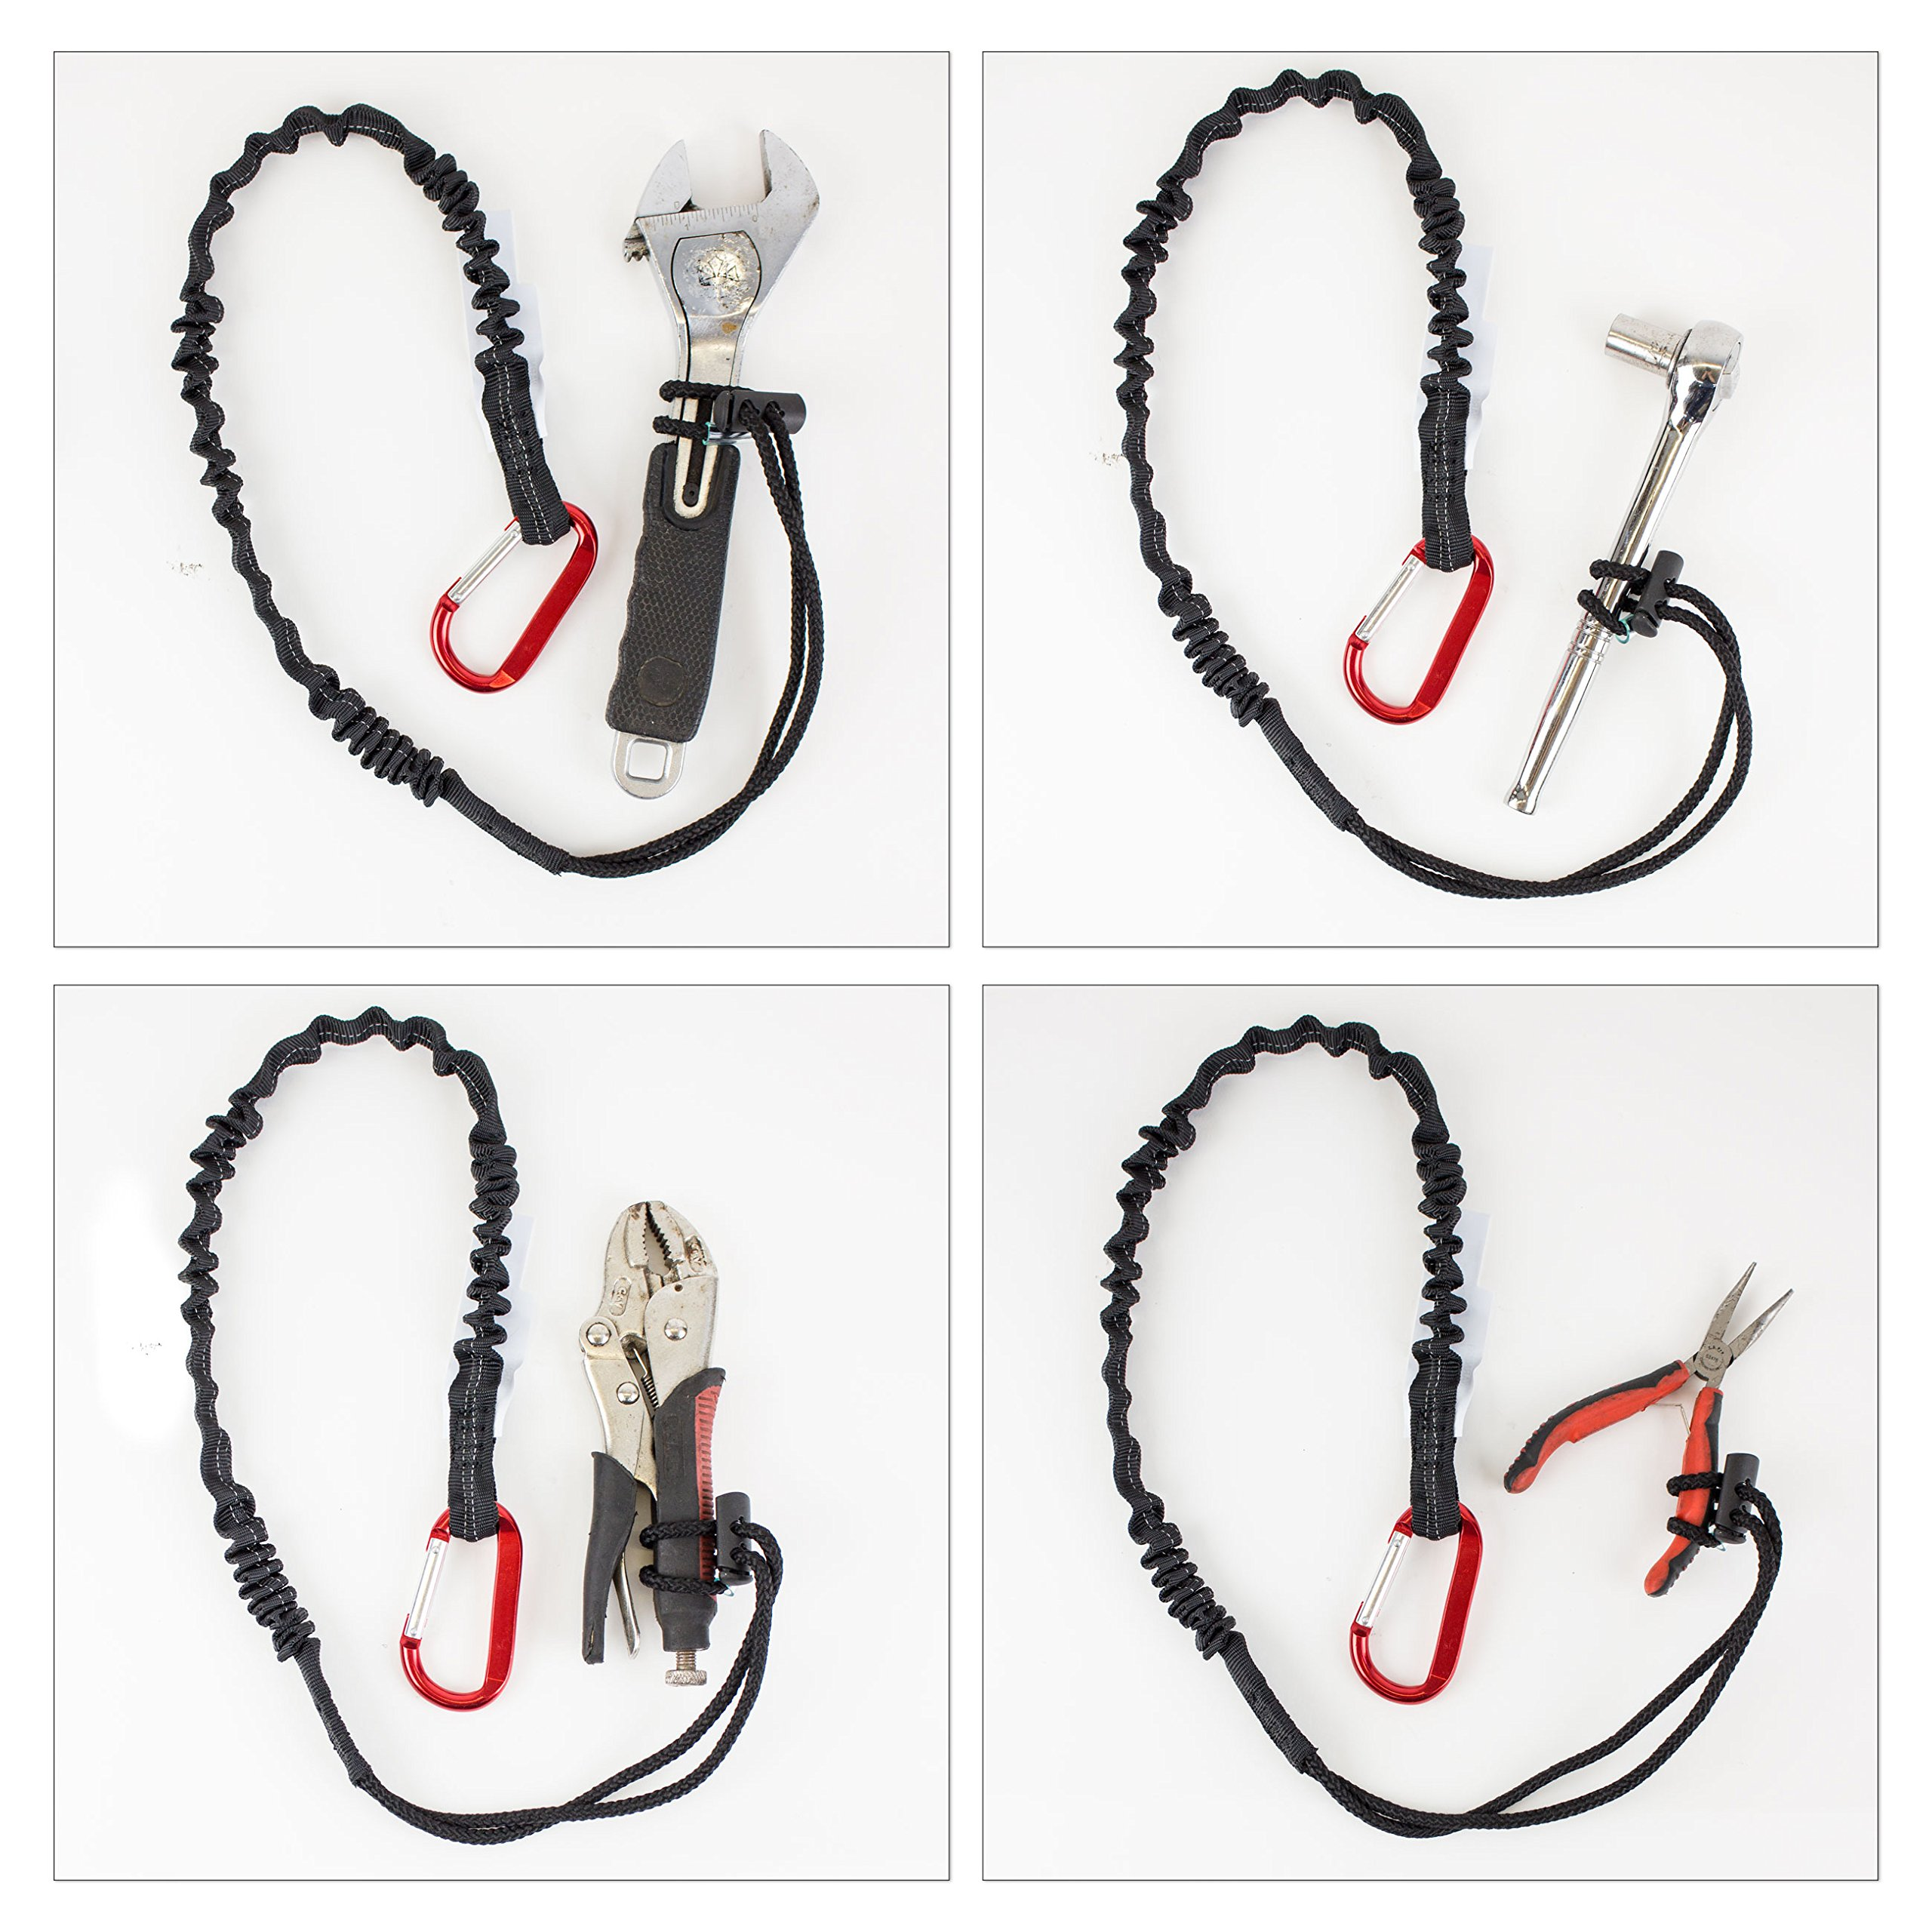 Spidergard SPTOOL02 3ft Tool Lanyard with Single Carabiner (Pack of 3, Black) by Spidergard (Image #5)